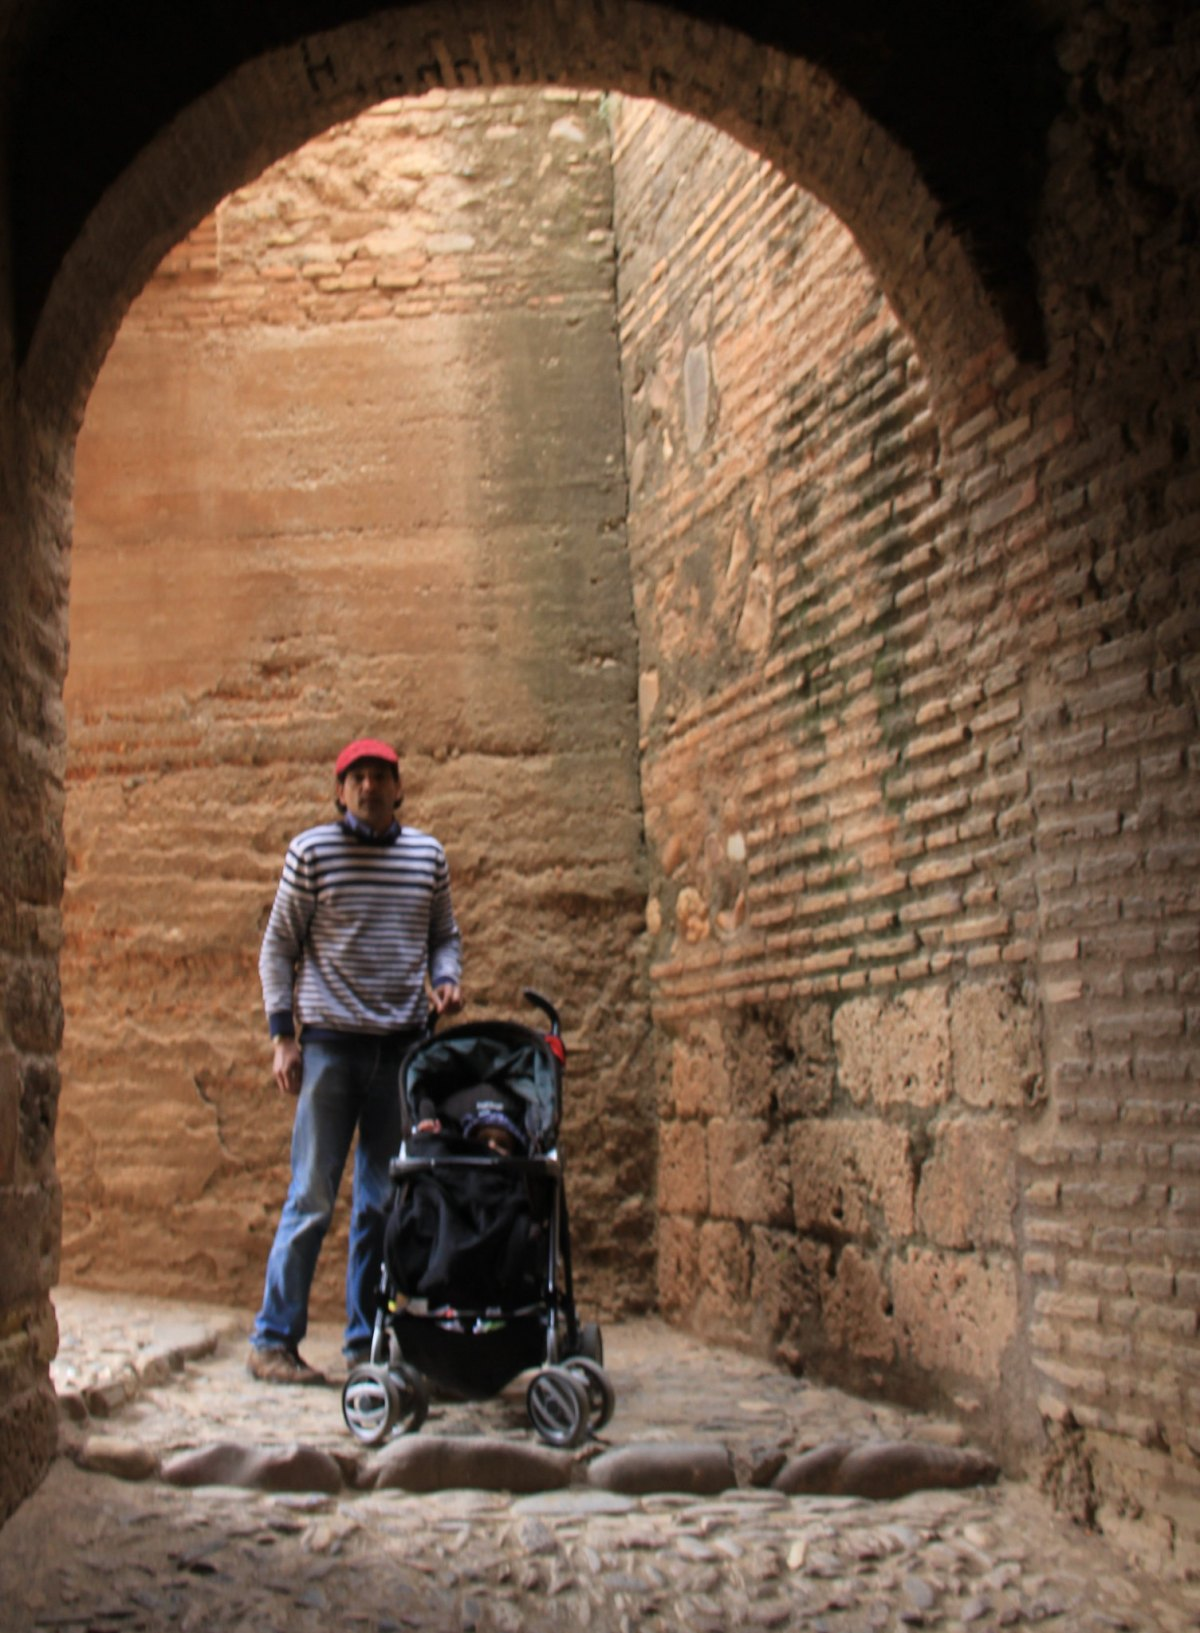 Alcazaba is the oldest part of Alhambra